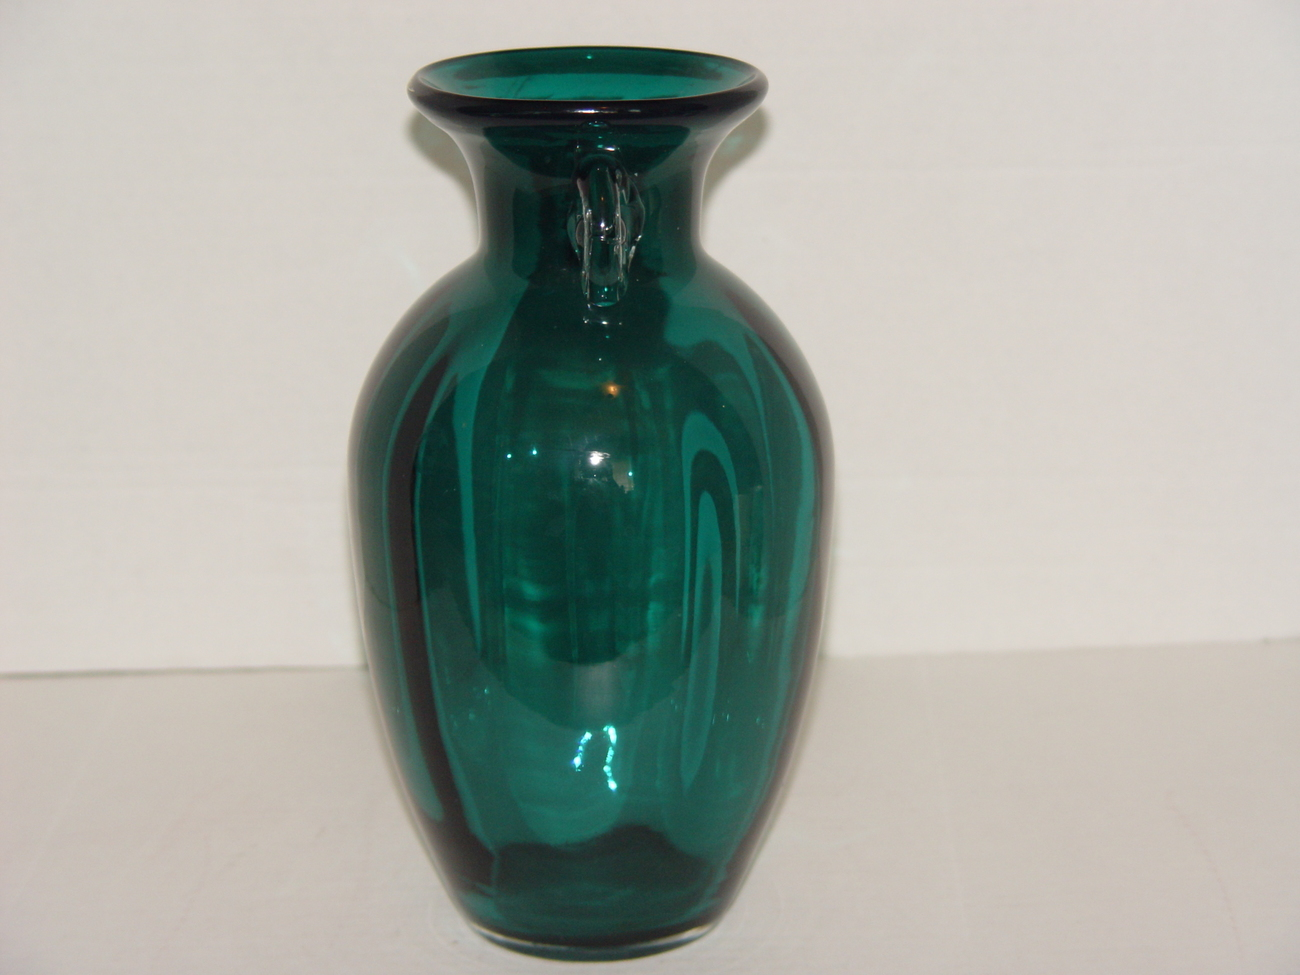 Beautiful Emerald Green Teal Glass Urn Vase With Clear Handles By Pier 1 Other Countries